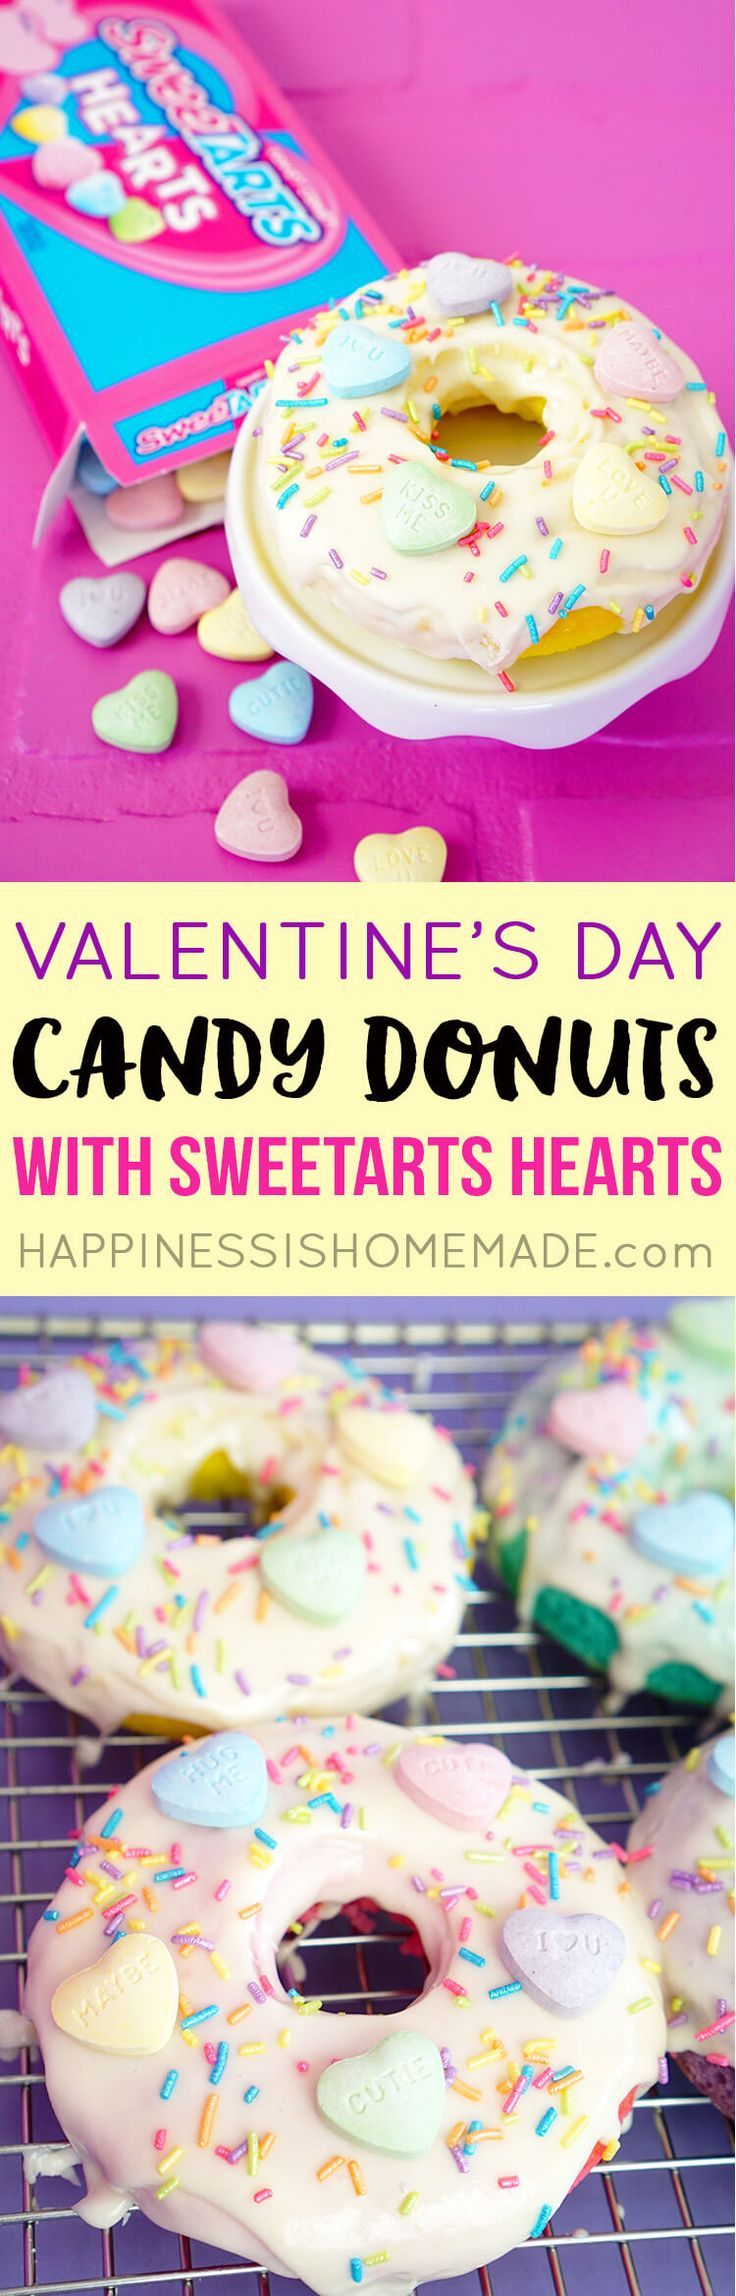 Valentine's Day Donuts with @SweeTARTS - the perfect gift for your sweetheart! #ValentinesDay